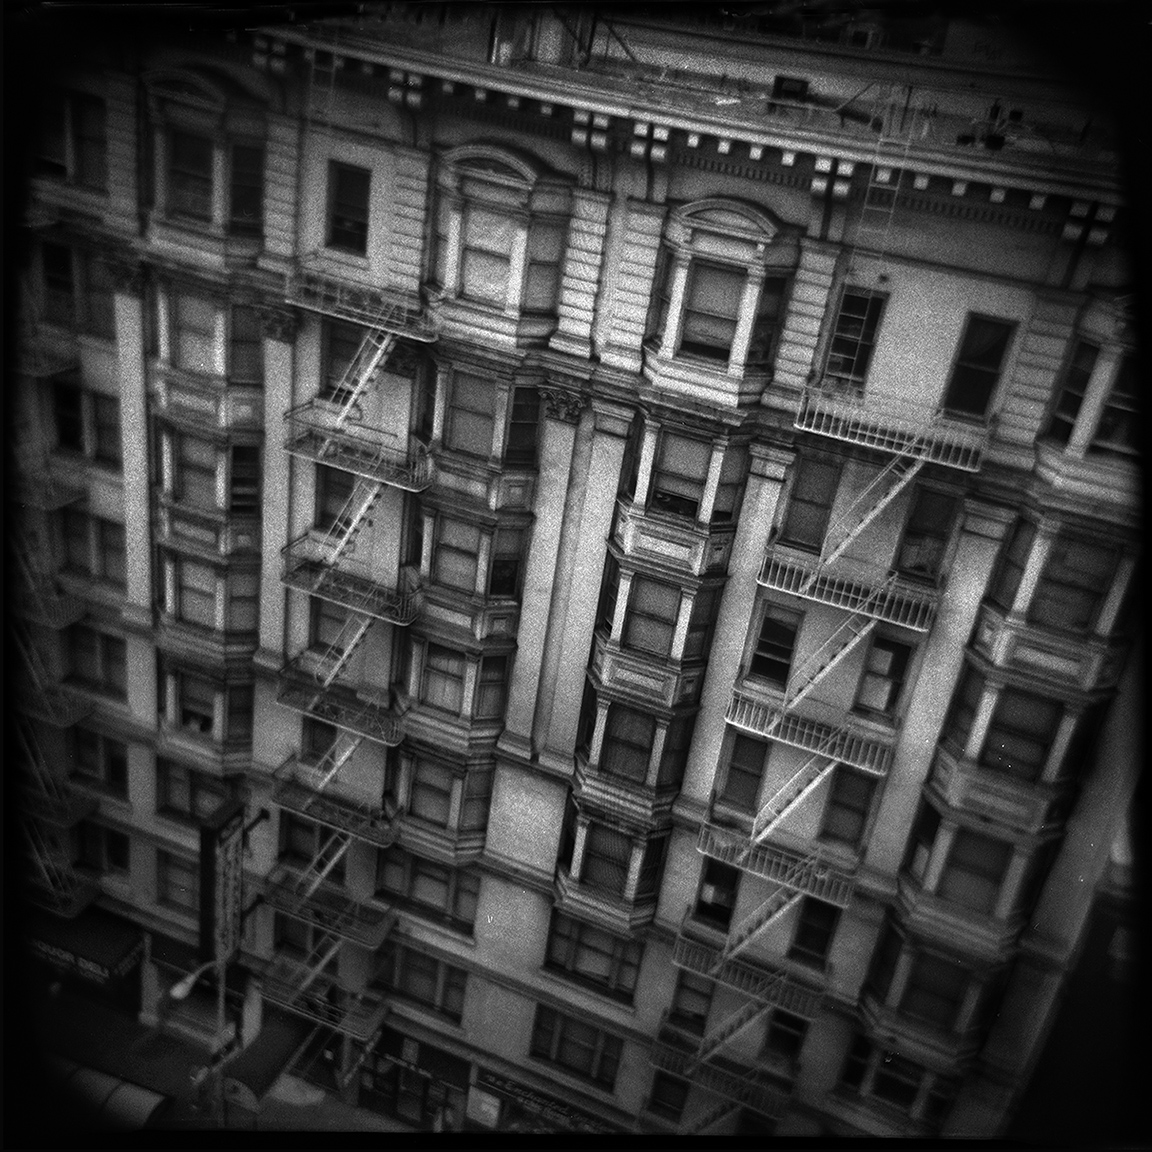 05-SF-HOLGA-WEBSITE-060314